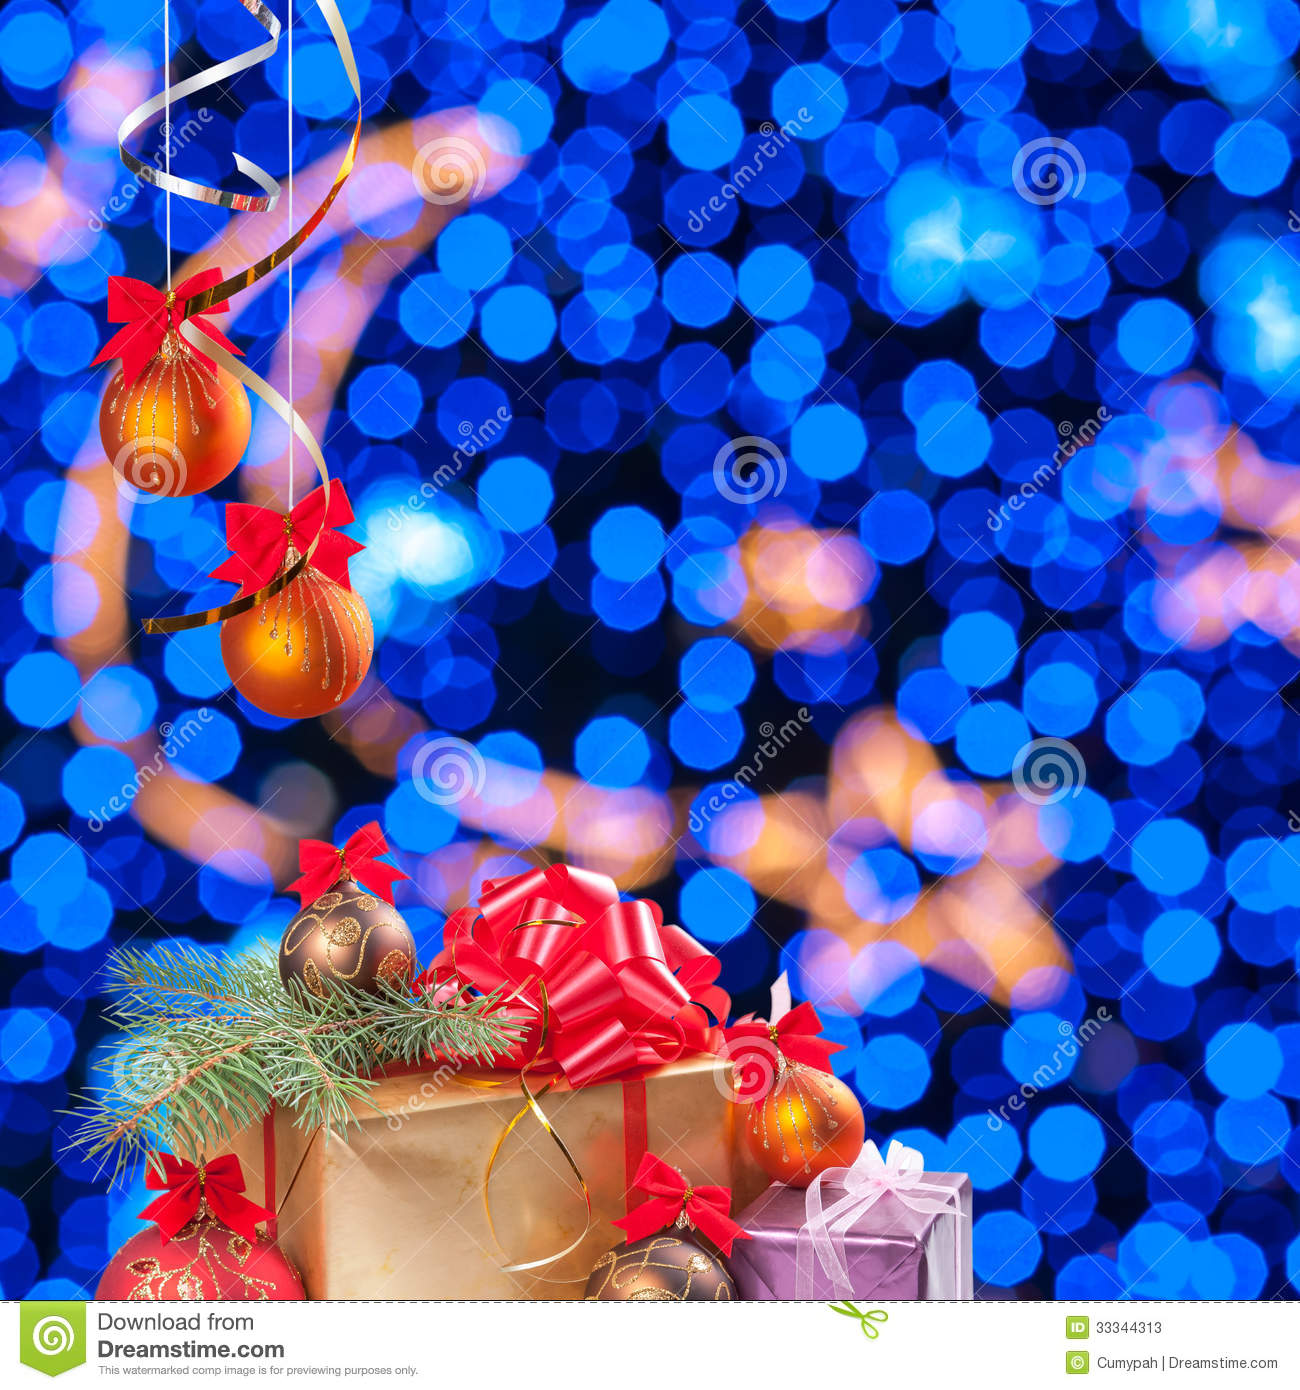 Celebrate Bokeh Background 004 Stock Image - Image of ...